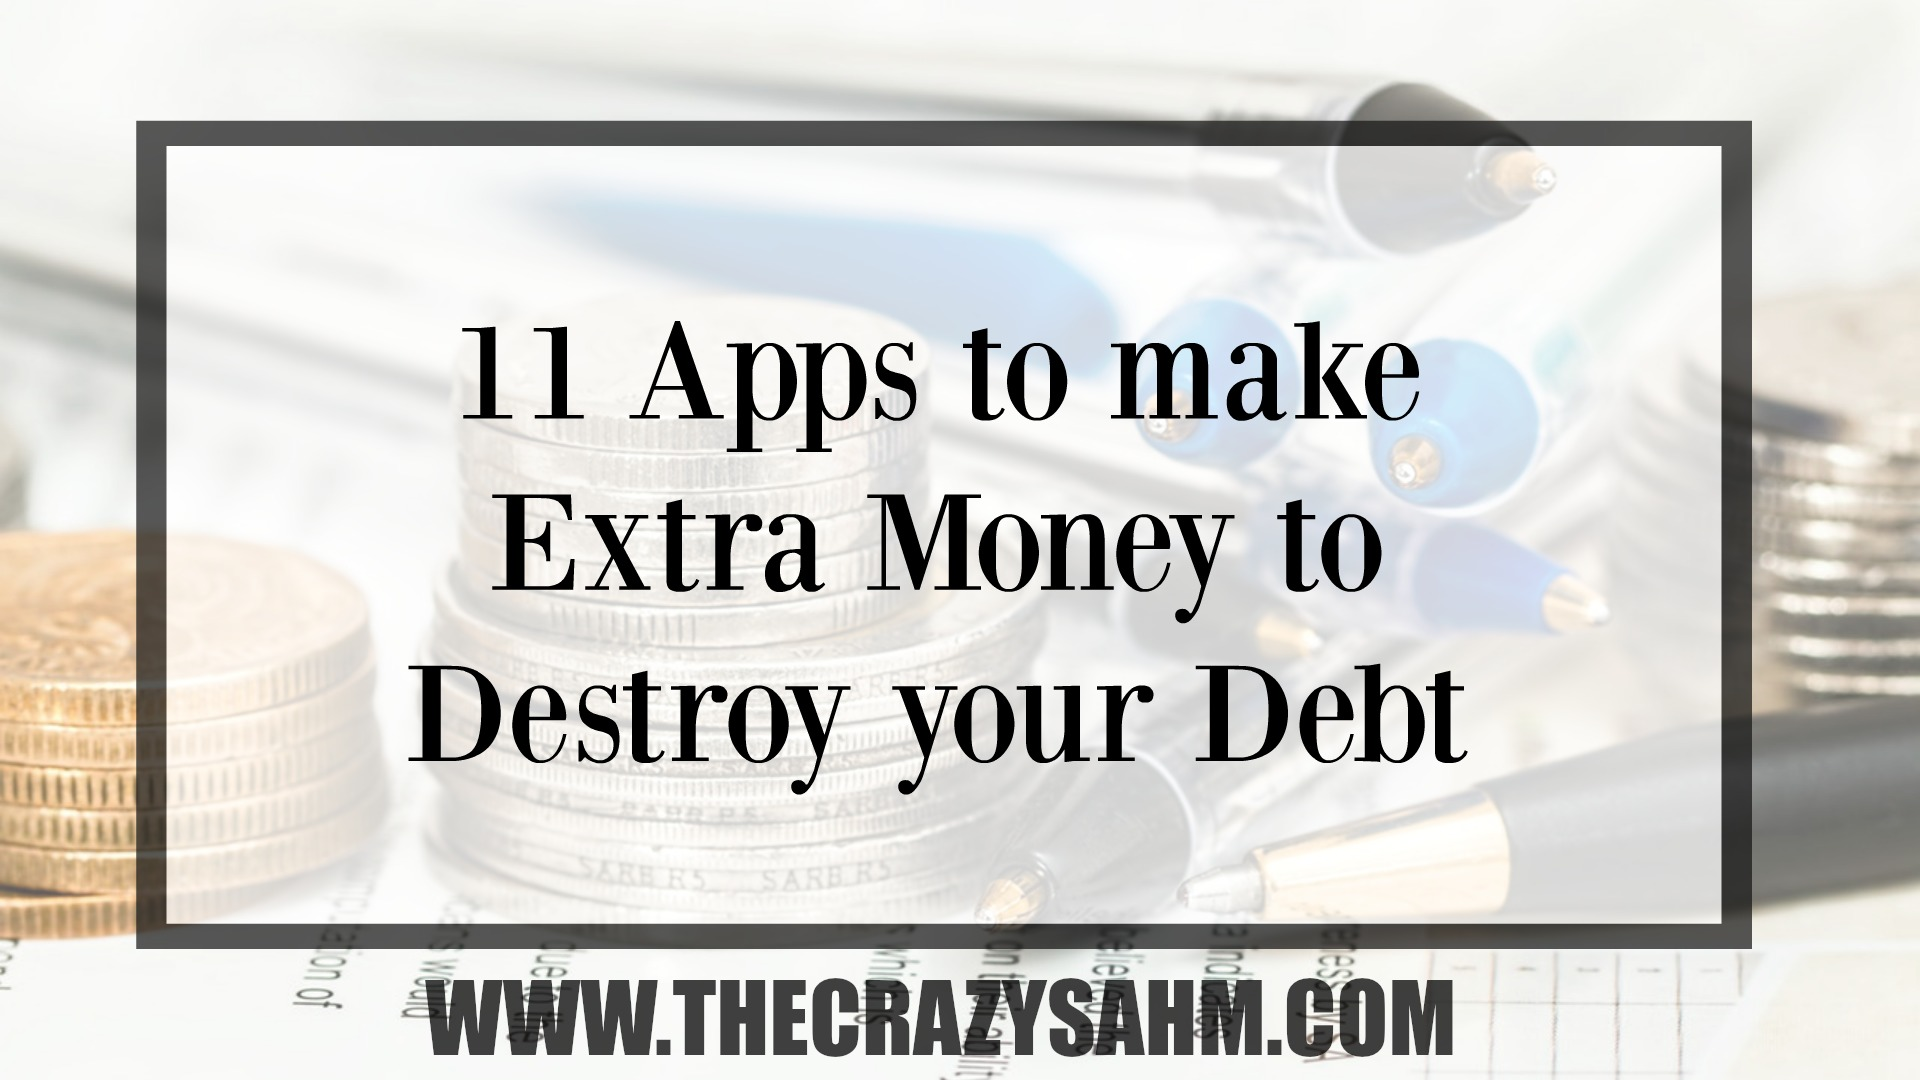 Finding extra money to pay off debt can be rough. Check out these apps to start earning extra money today!